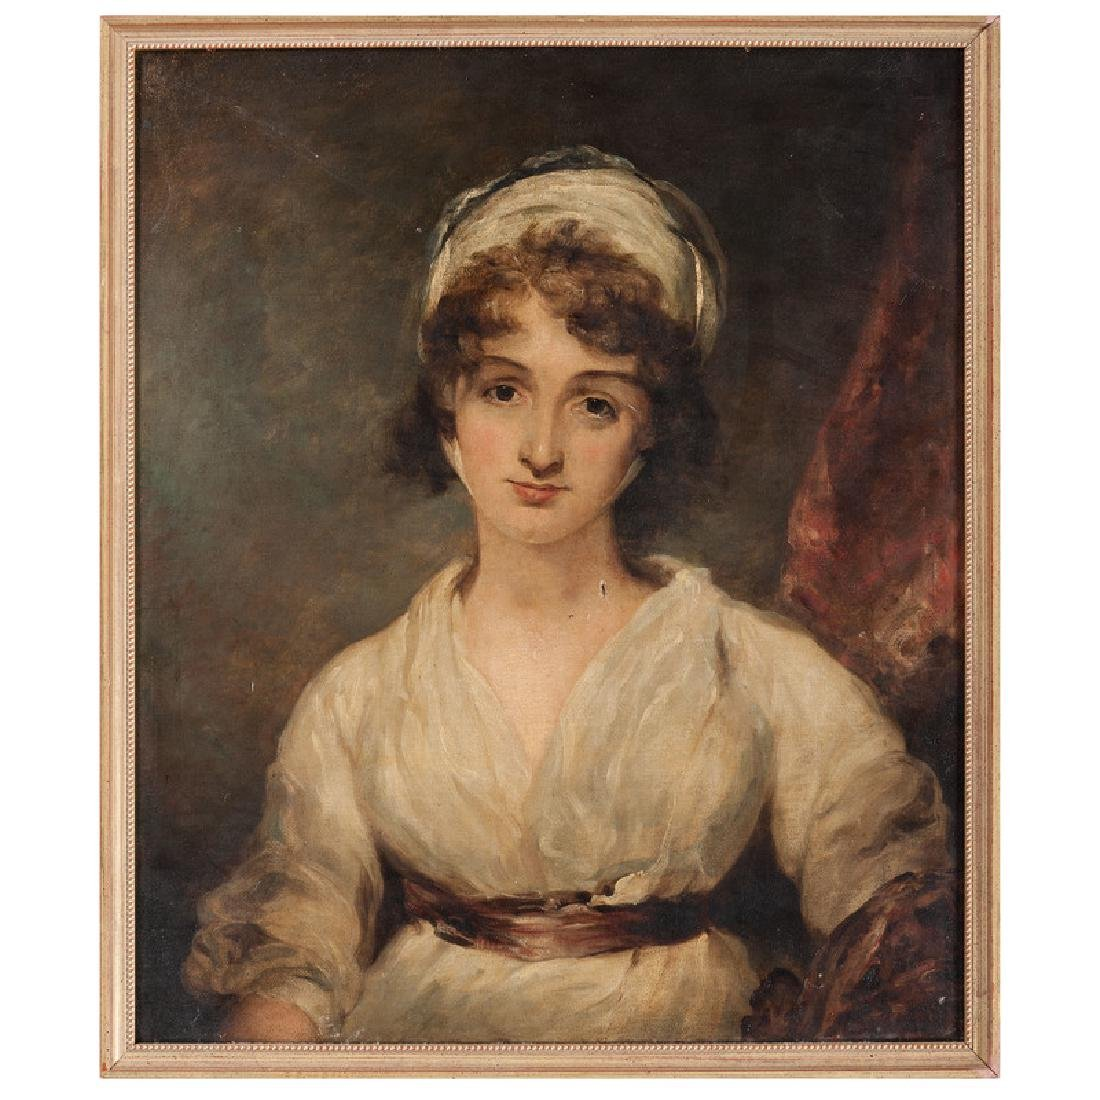 English Portrait of a Woman